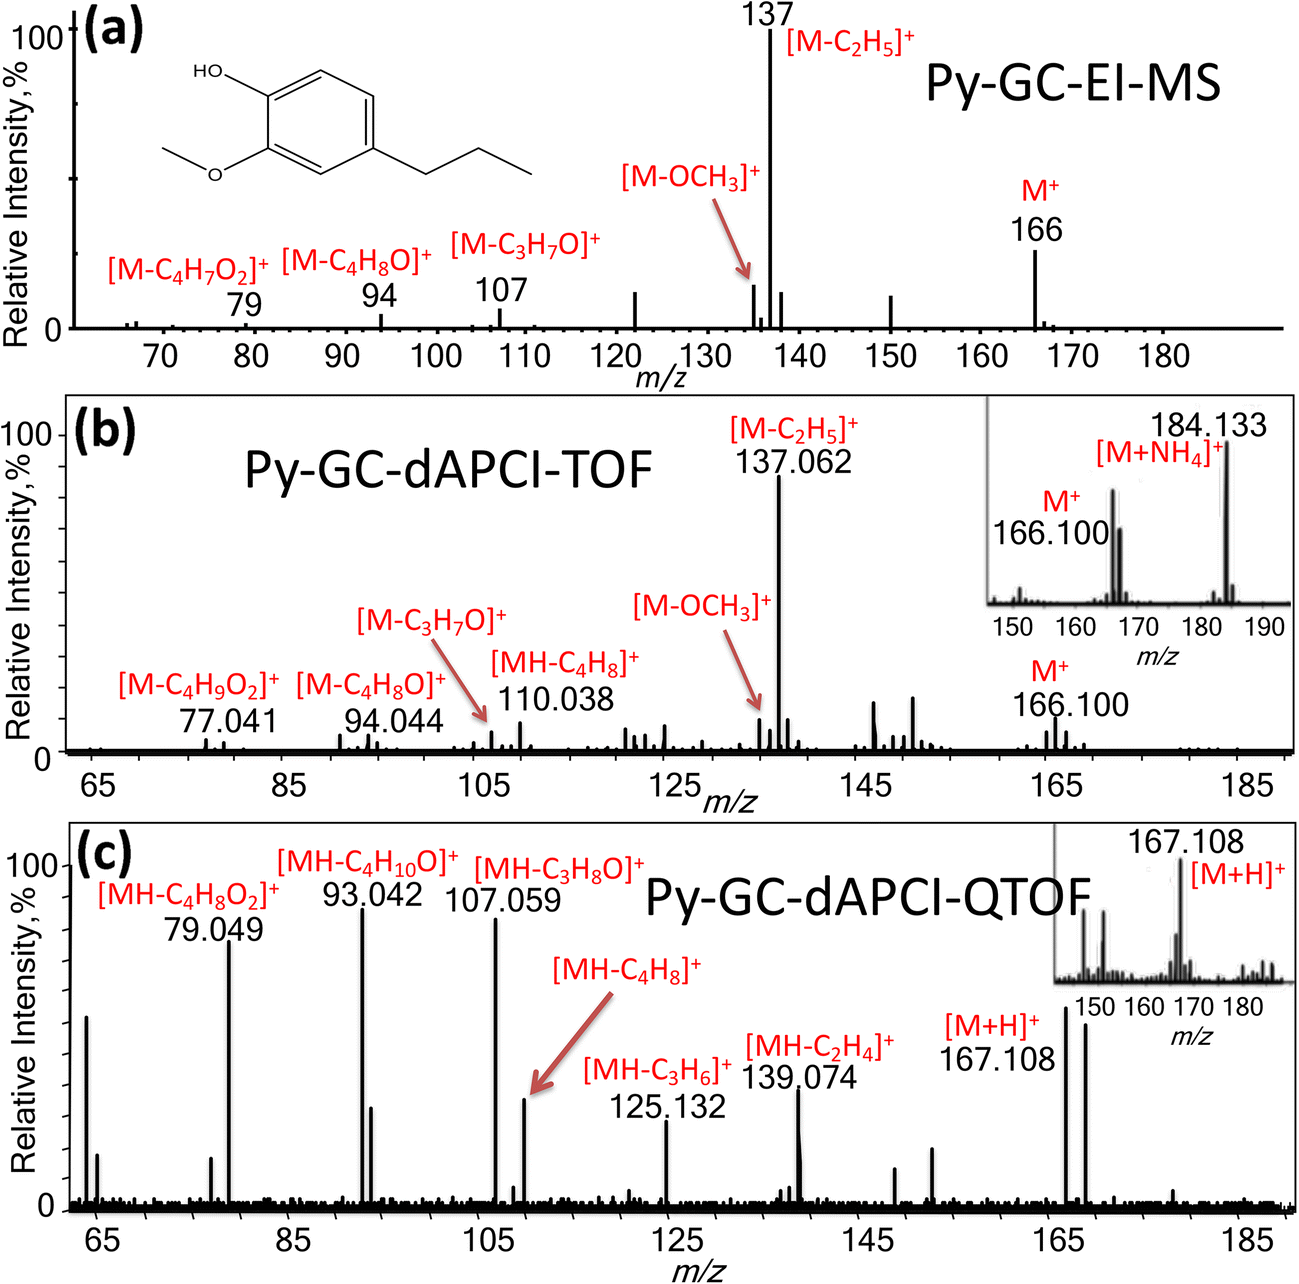 Gas Chromatography-Tandem Mass Spectrometry of Lignin